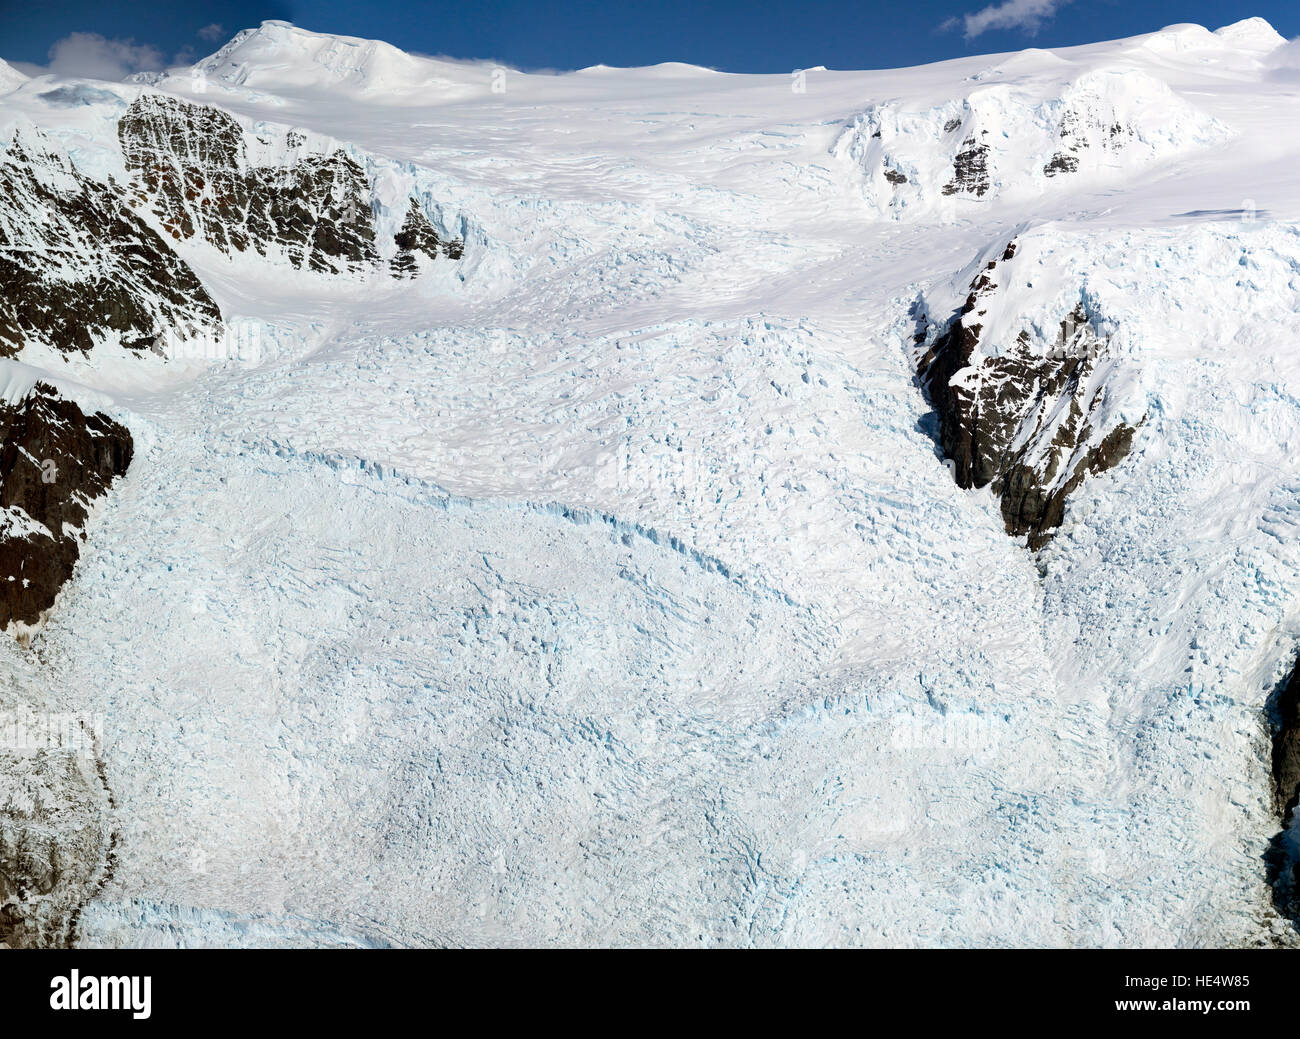 An aerial view of the worlds largest icefall. The Stairway Icefall in the Wrangell–St. Elias National Park and Preserve - Stock Image